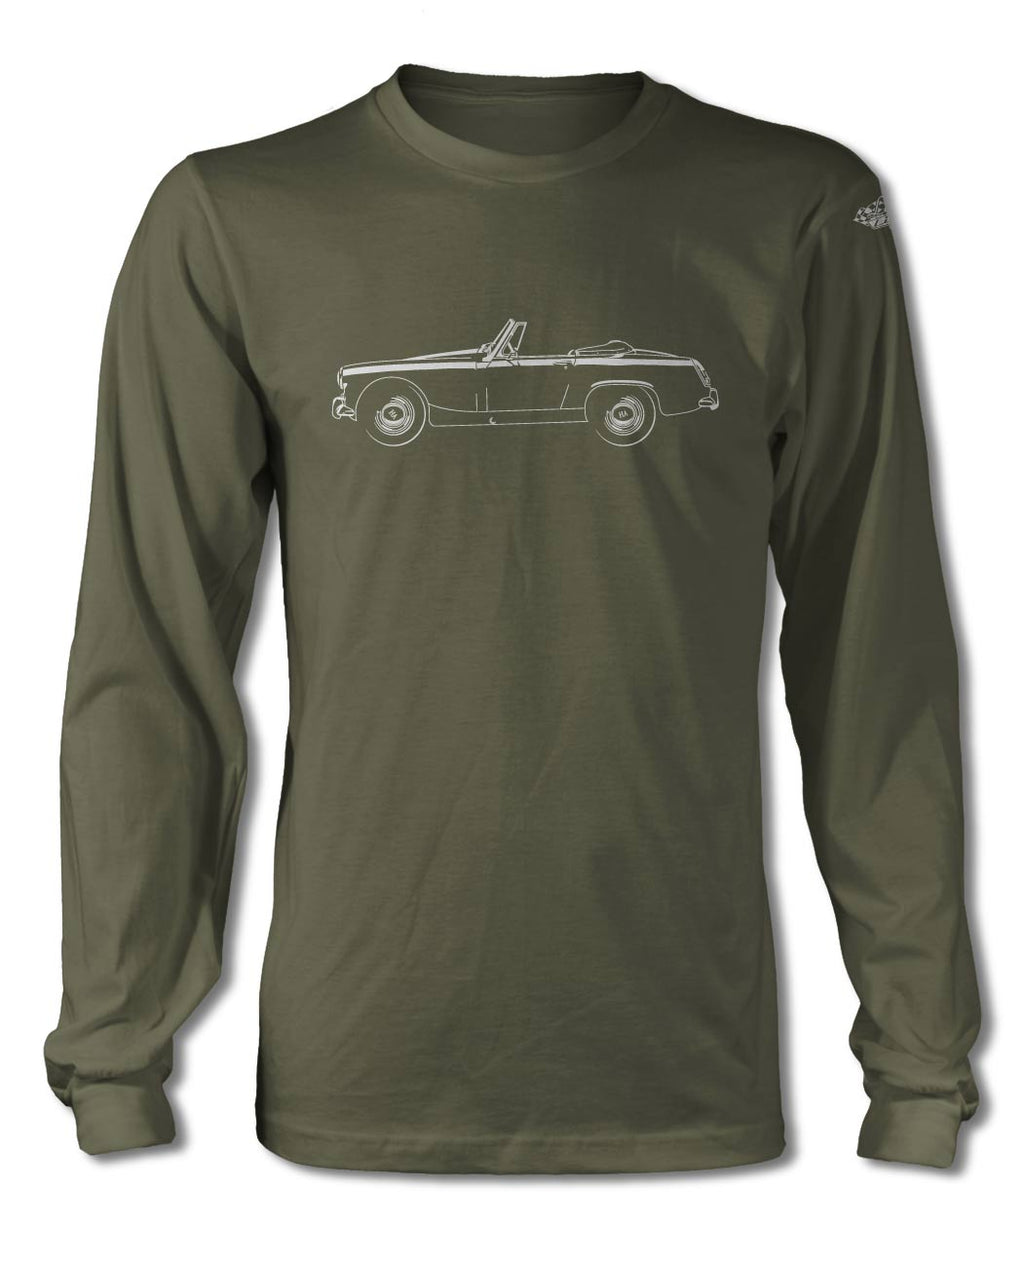 Austin Healey Sprite MKII MKIII Roadster T-Shirt - Long Sleeves - Side View